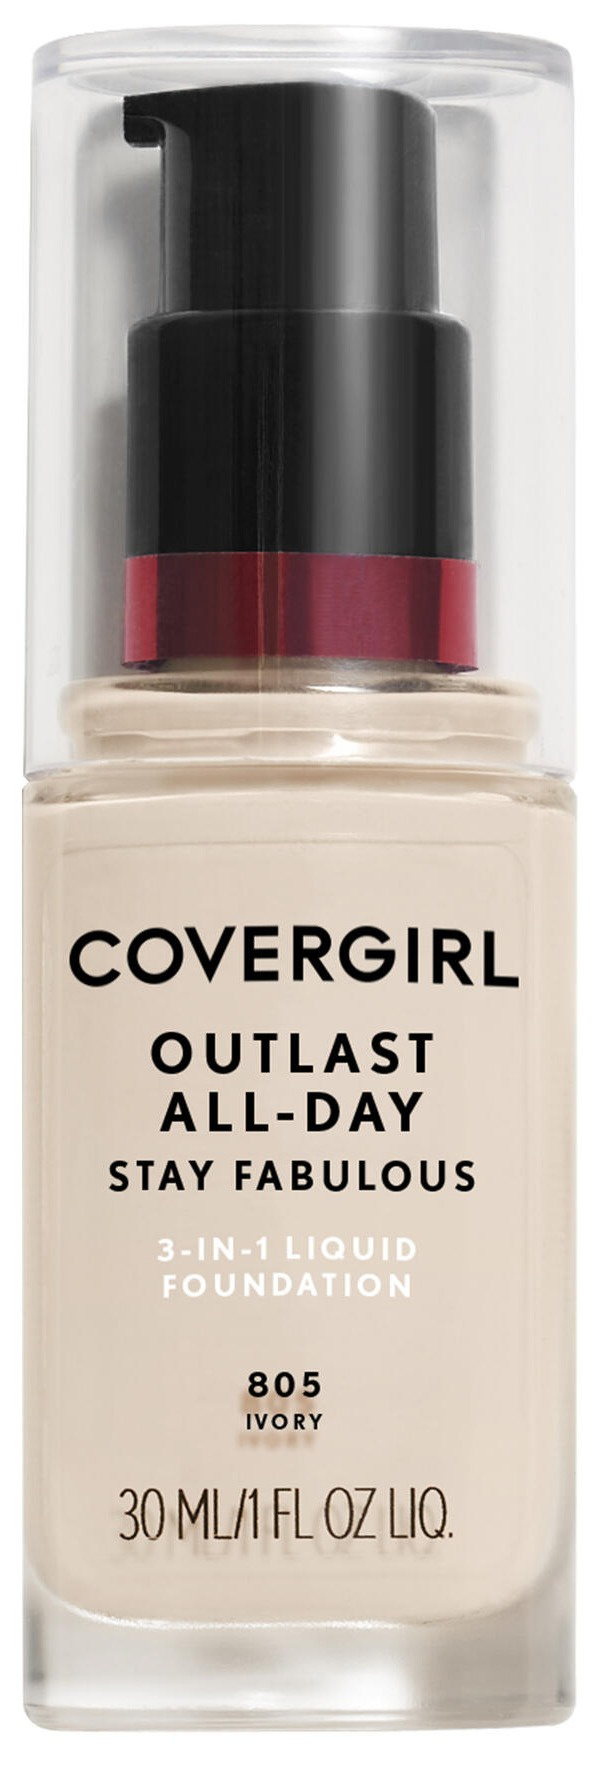 CoverGirl Outlast Stay All Day Fabulous Foundation